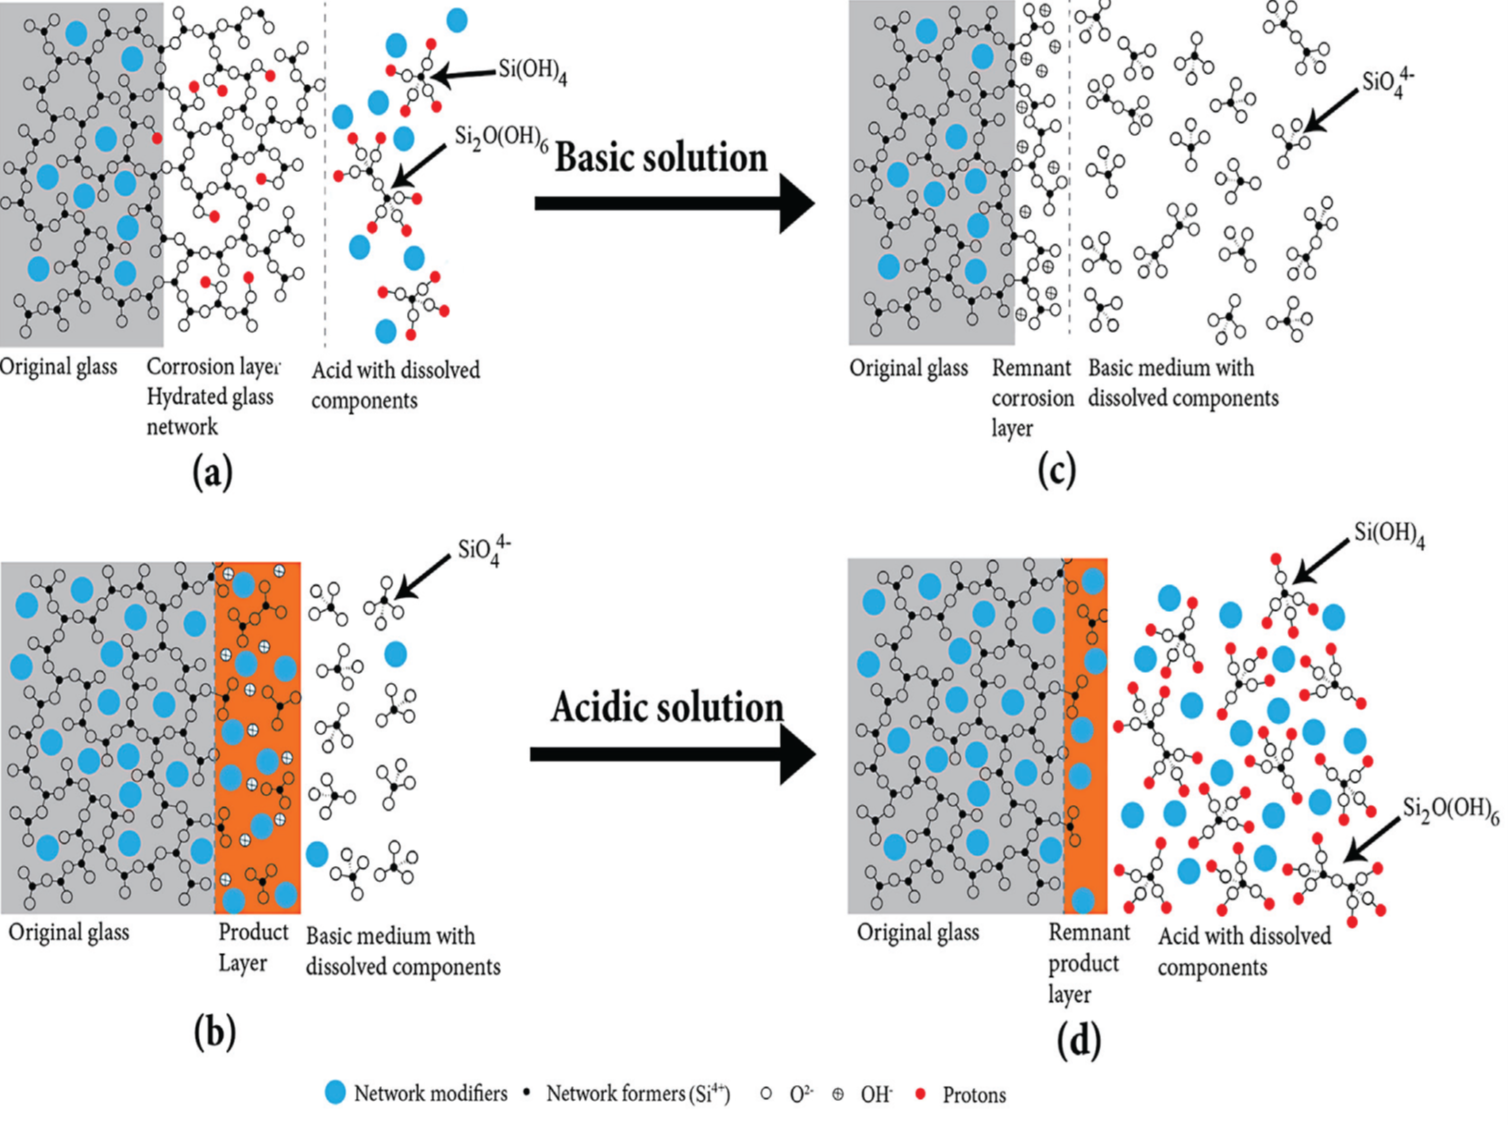 Chemical Engineering At The University Of Florida Clark 530 Wiring Diagram Figure Caption Schematic Degradation Mechanisms In A Acidic And B Basic Solutions Proposed By Herrmann Et Al 2013